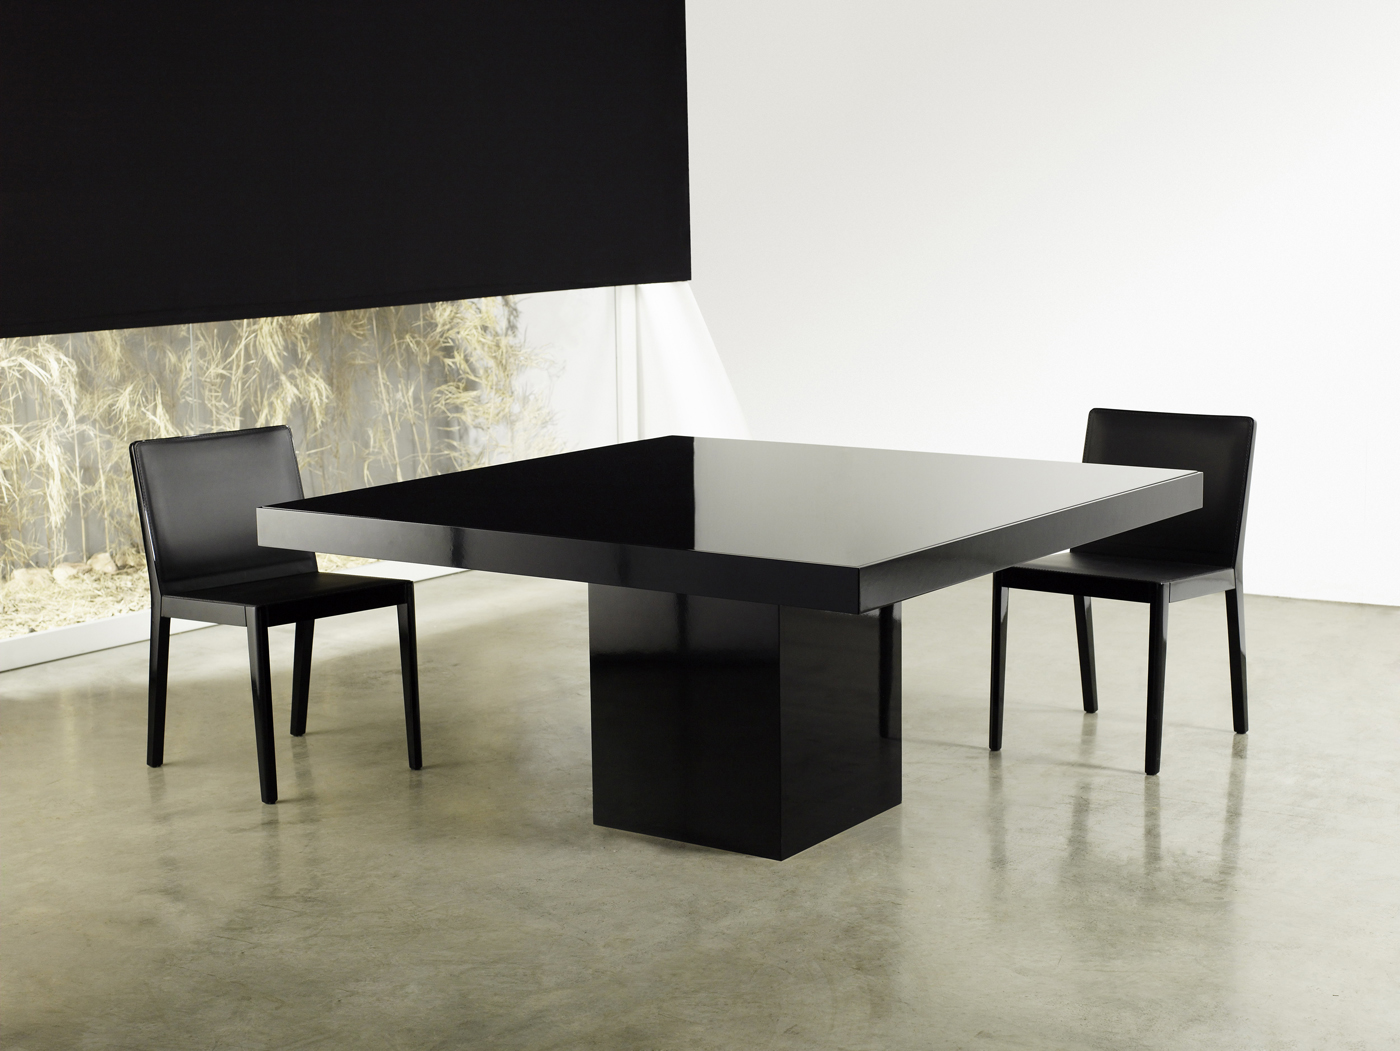 square contemporary high gloss dining table lexington fayette kentucky mlbee. Black Bedroom Furniture Sets. Home Design Ideas